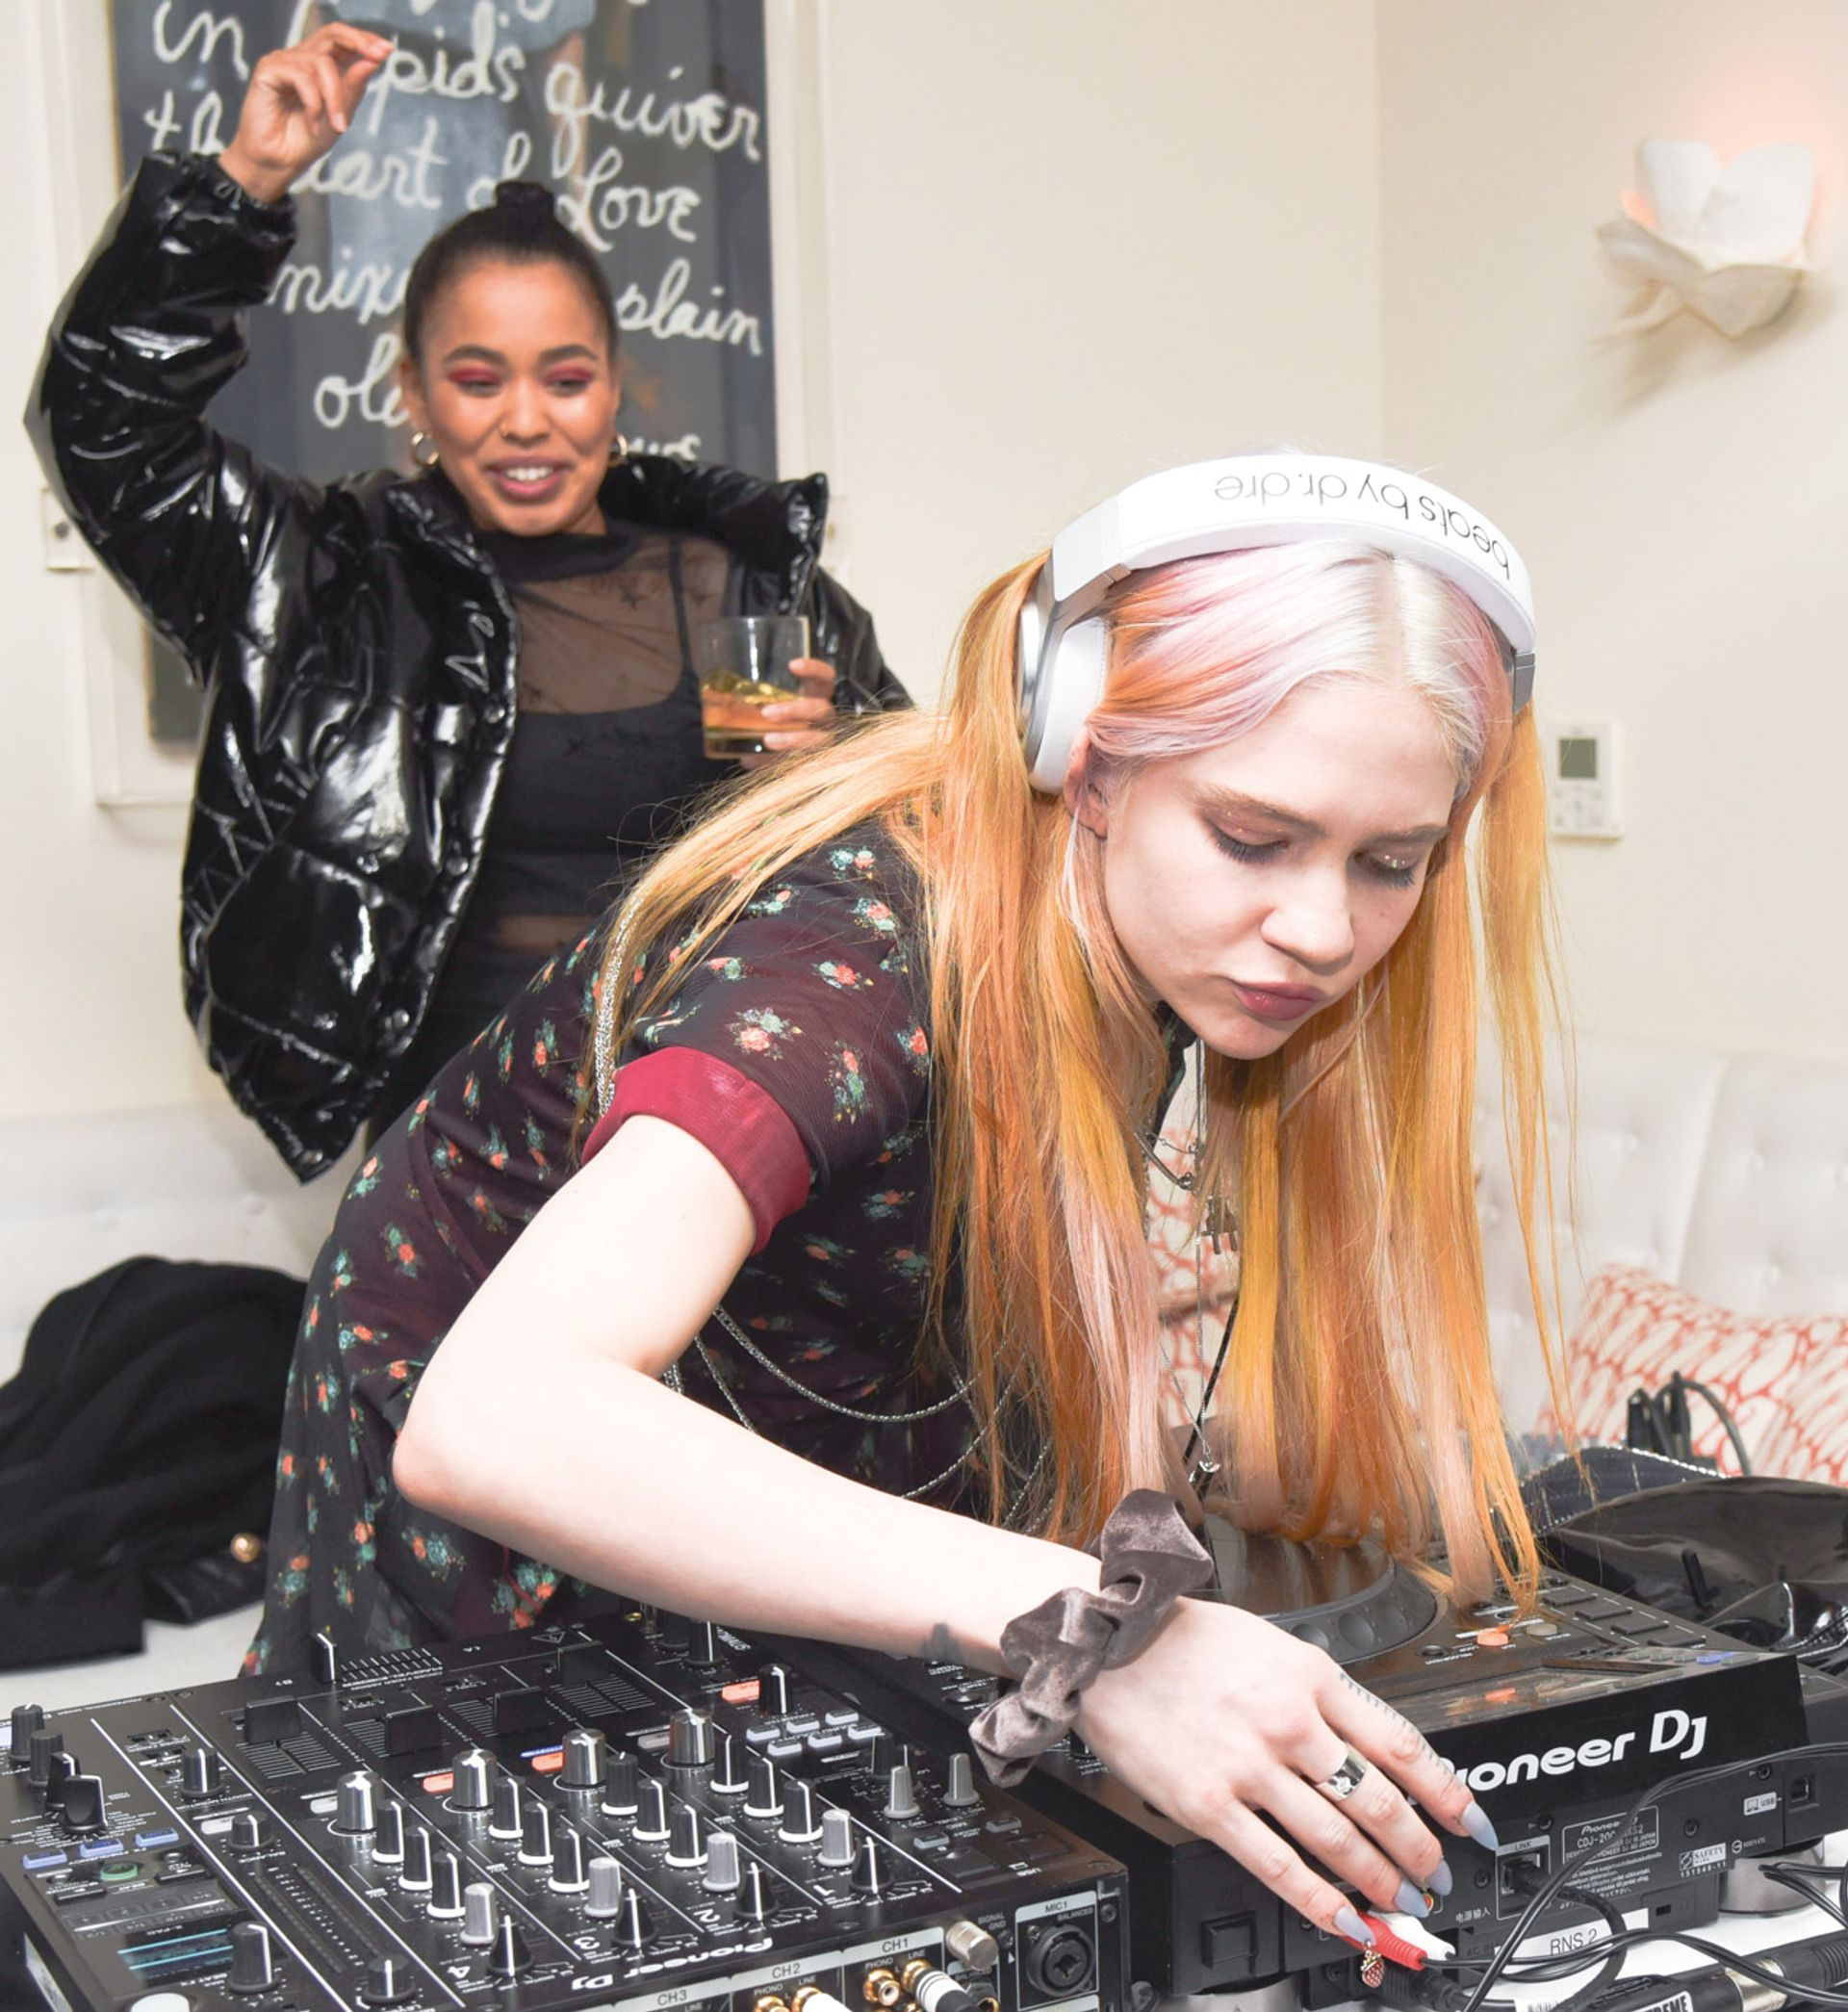 Grimes gets into the groove at the James Turrell party BFA